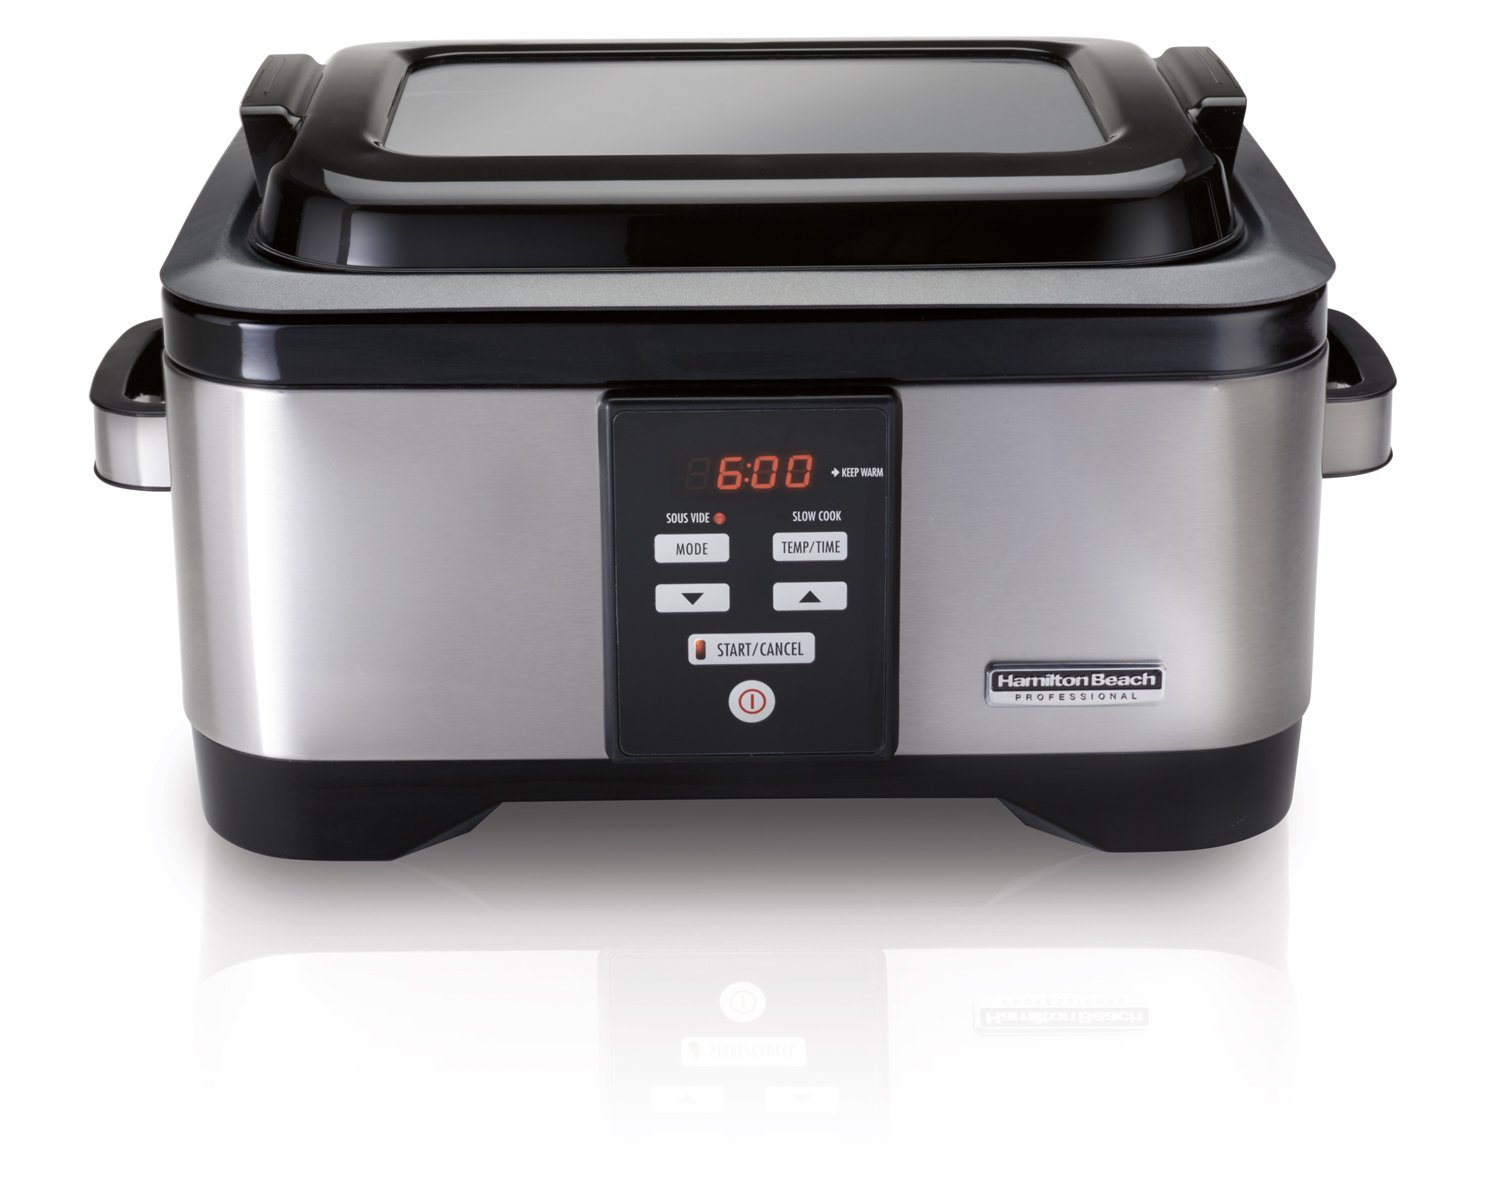 Hamilton Beach Professional Sous Vide Water Oven & Slow Cooker, 6 Quart Programmable, Stainless Steel (33970)